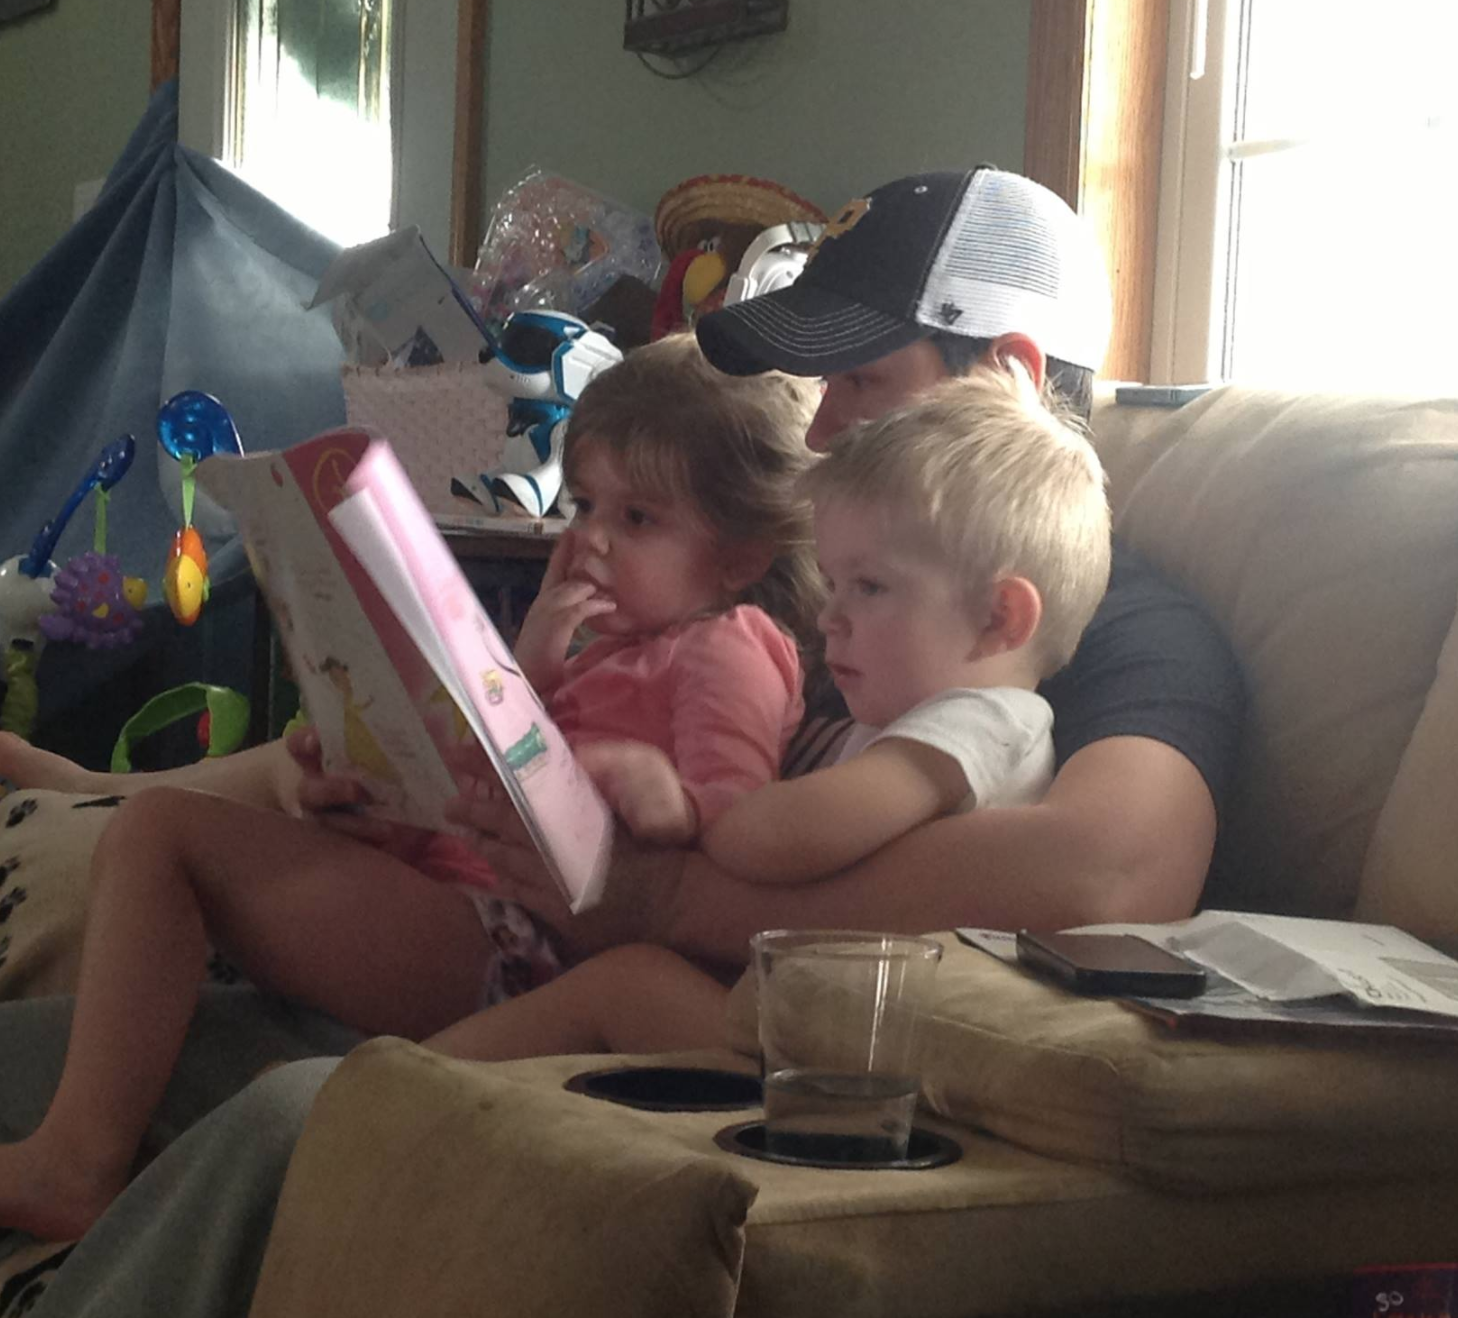 Having the chance to read to my niece and nephew is pretty important. Even if they're not so small anymore...